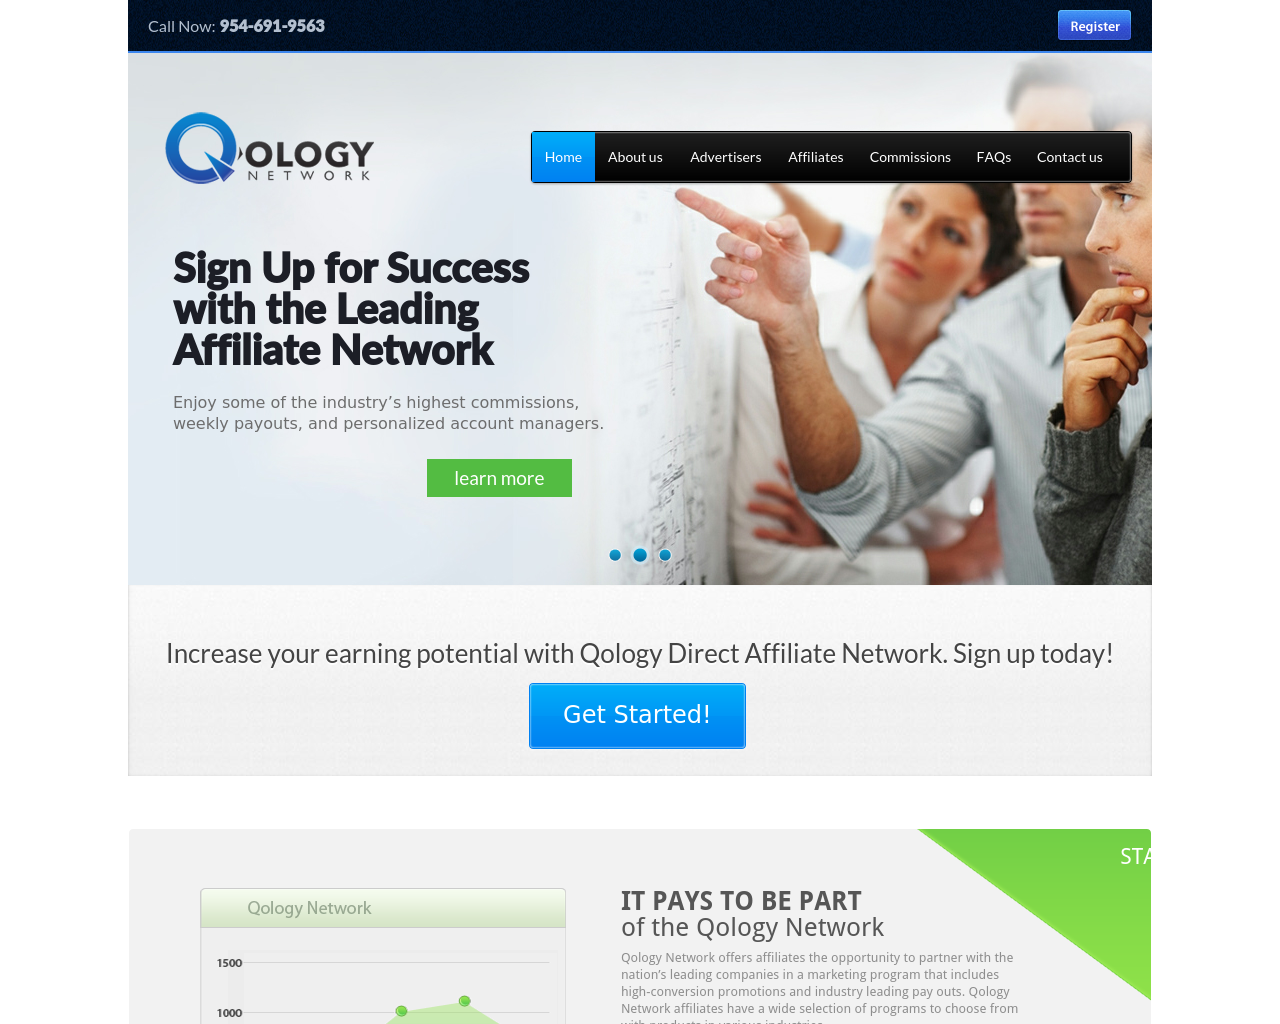 Qology-Network-Advertising-Reviews-Pricing